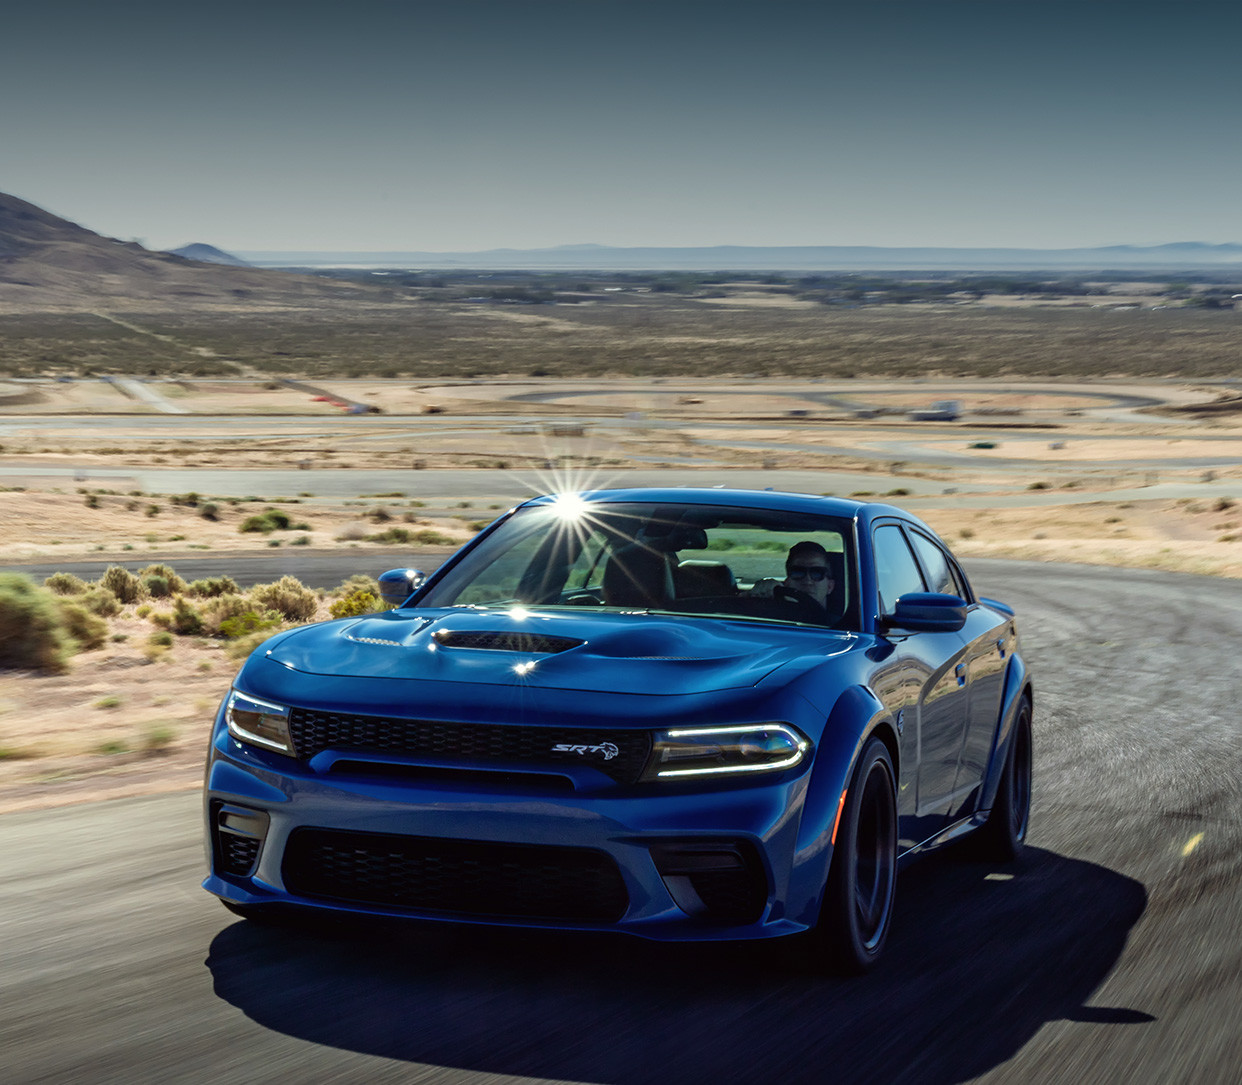 The blue 2020 Dodge Charger driving through plains on the road in a desert